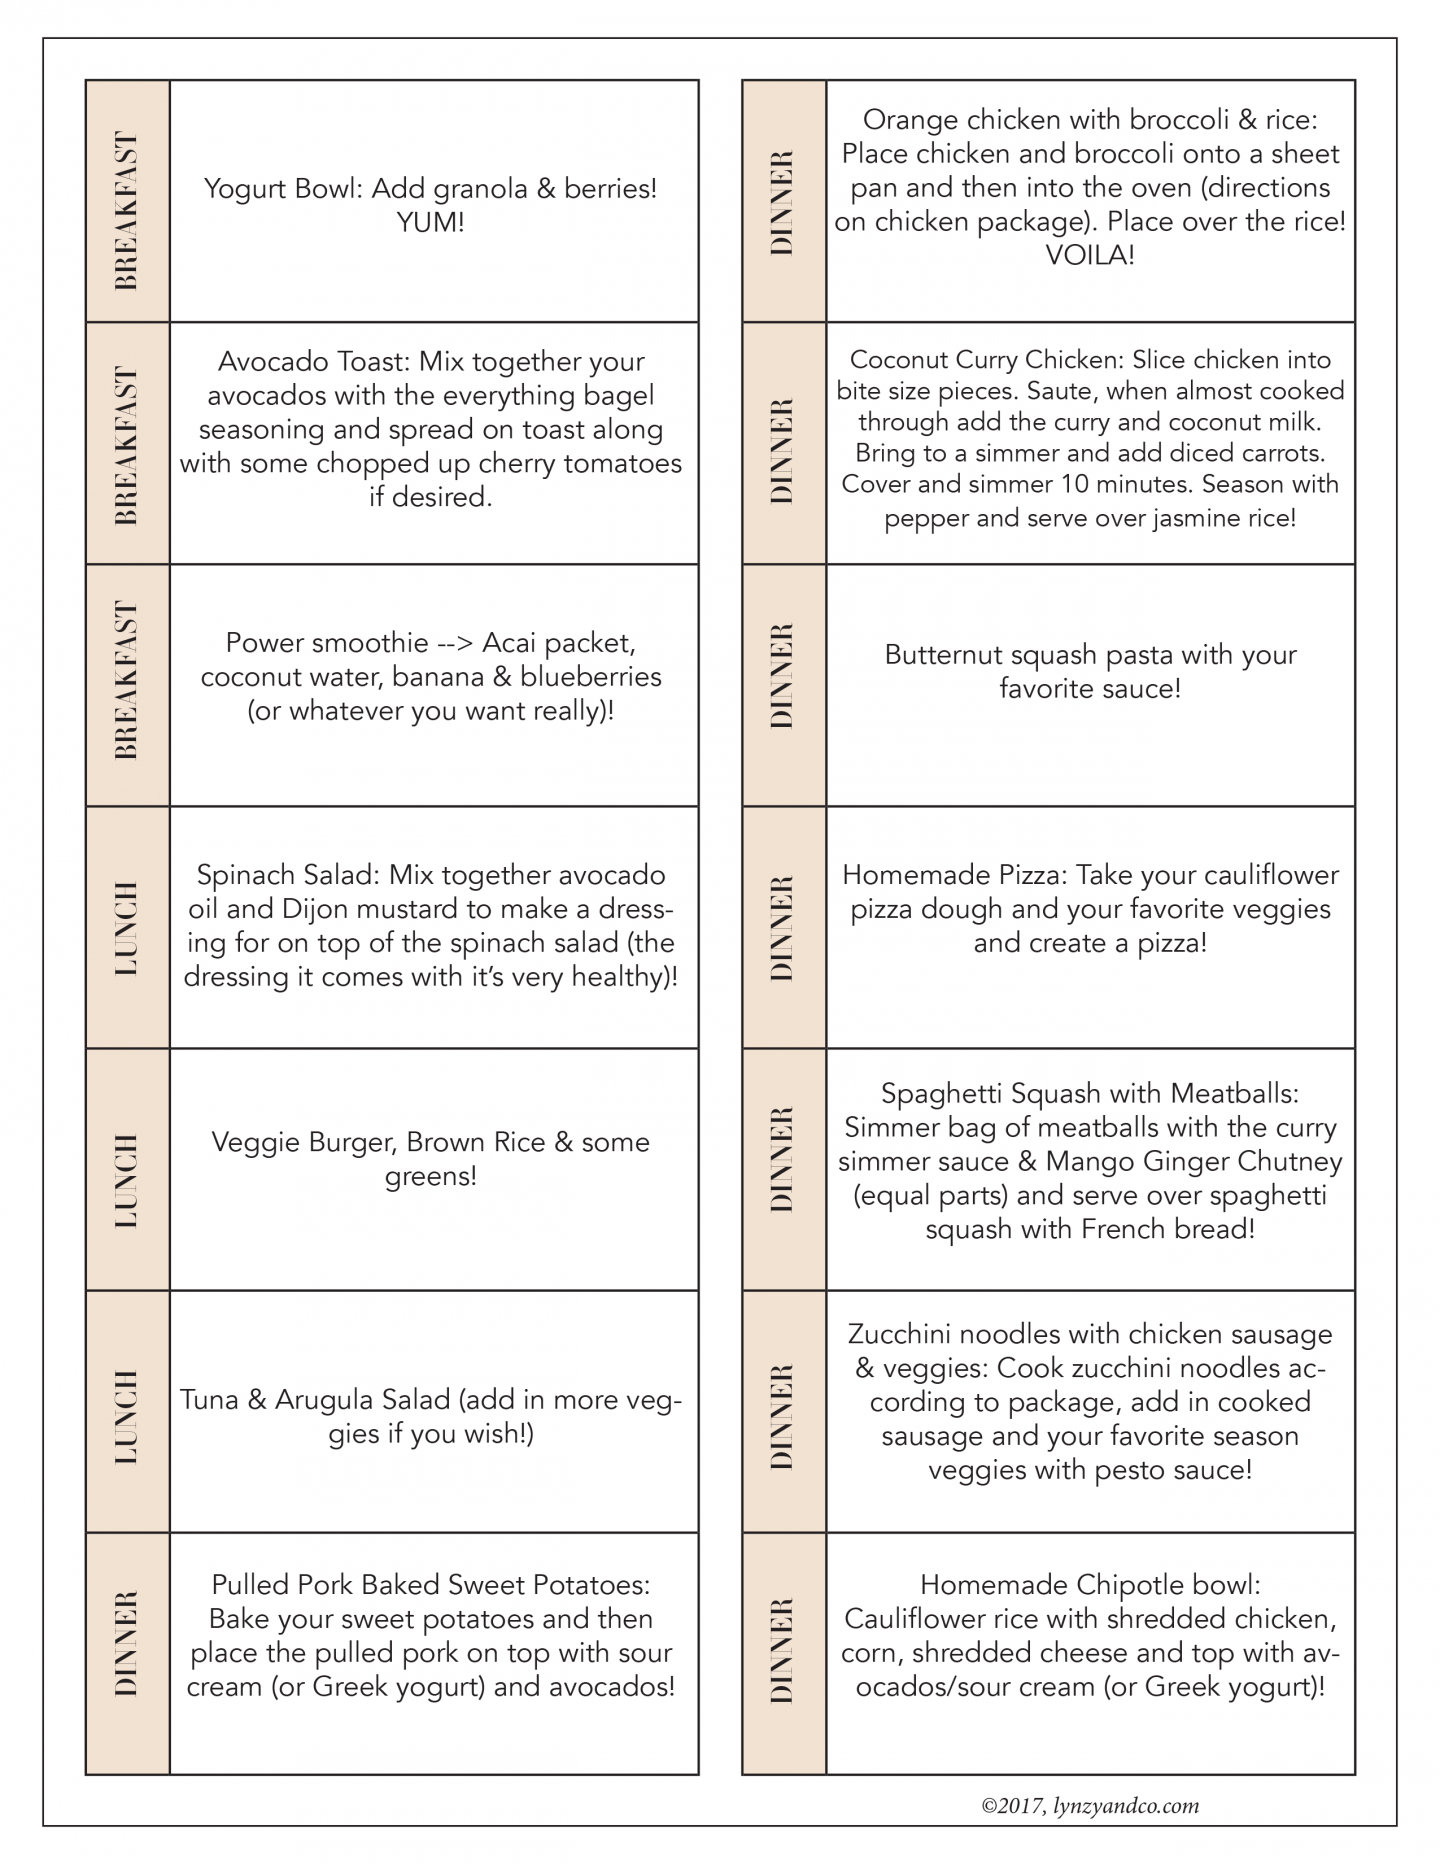 trader joe s meal plan ideas printable shopping list lynzy co